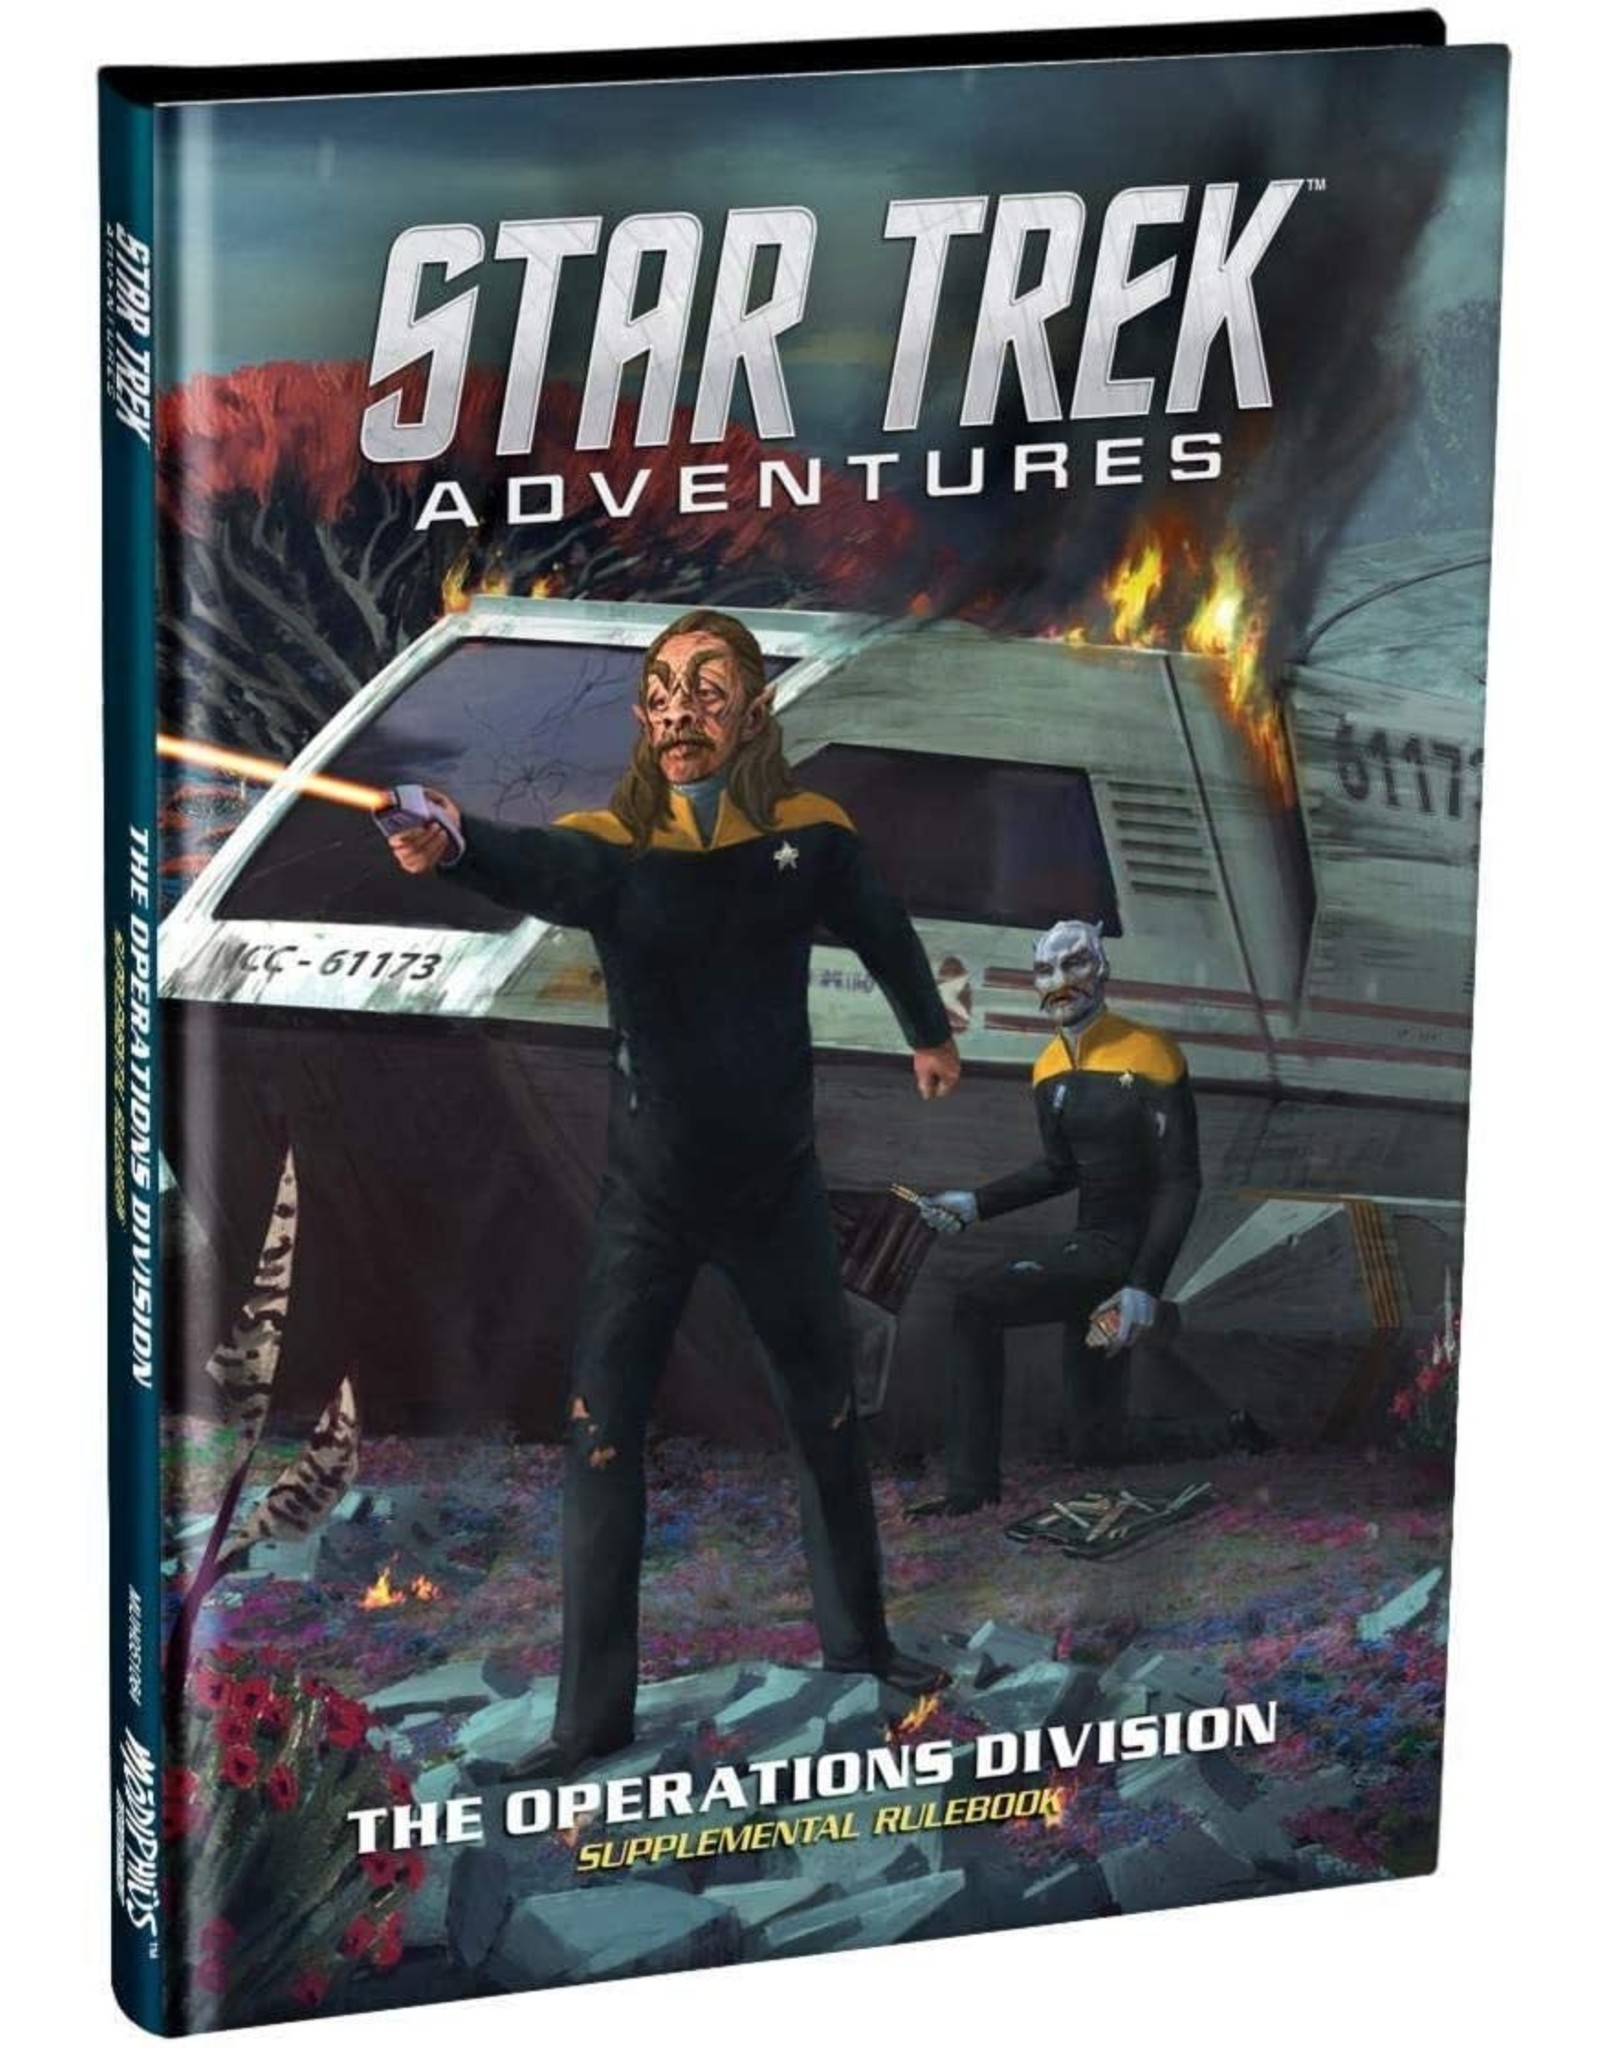 Star Trek Adventures: The Operations Division